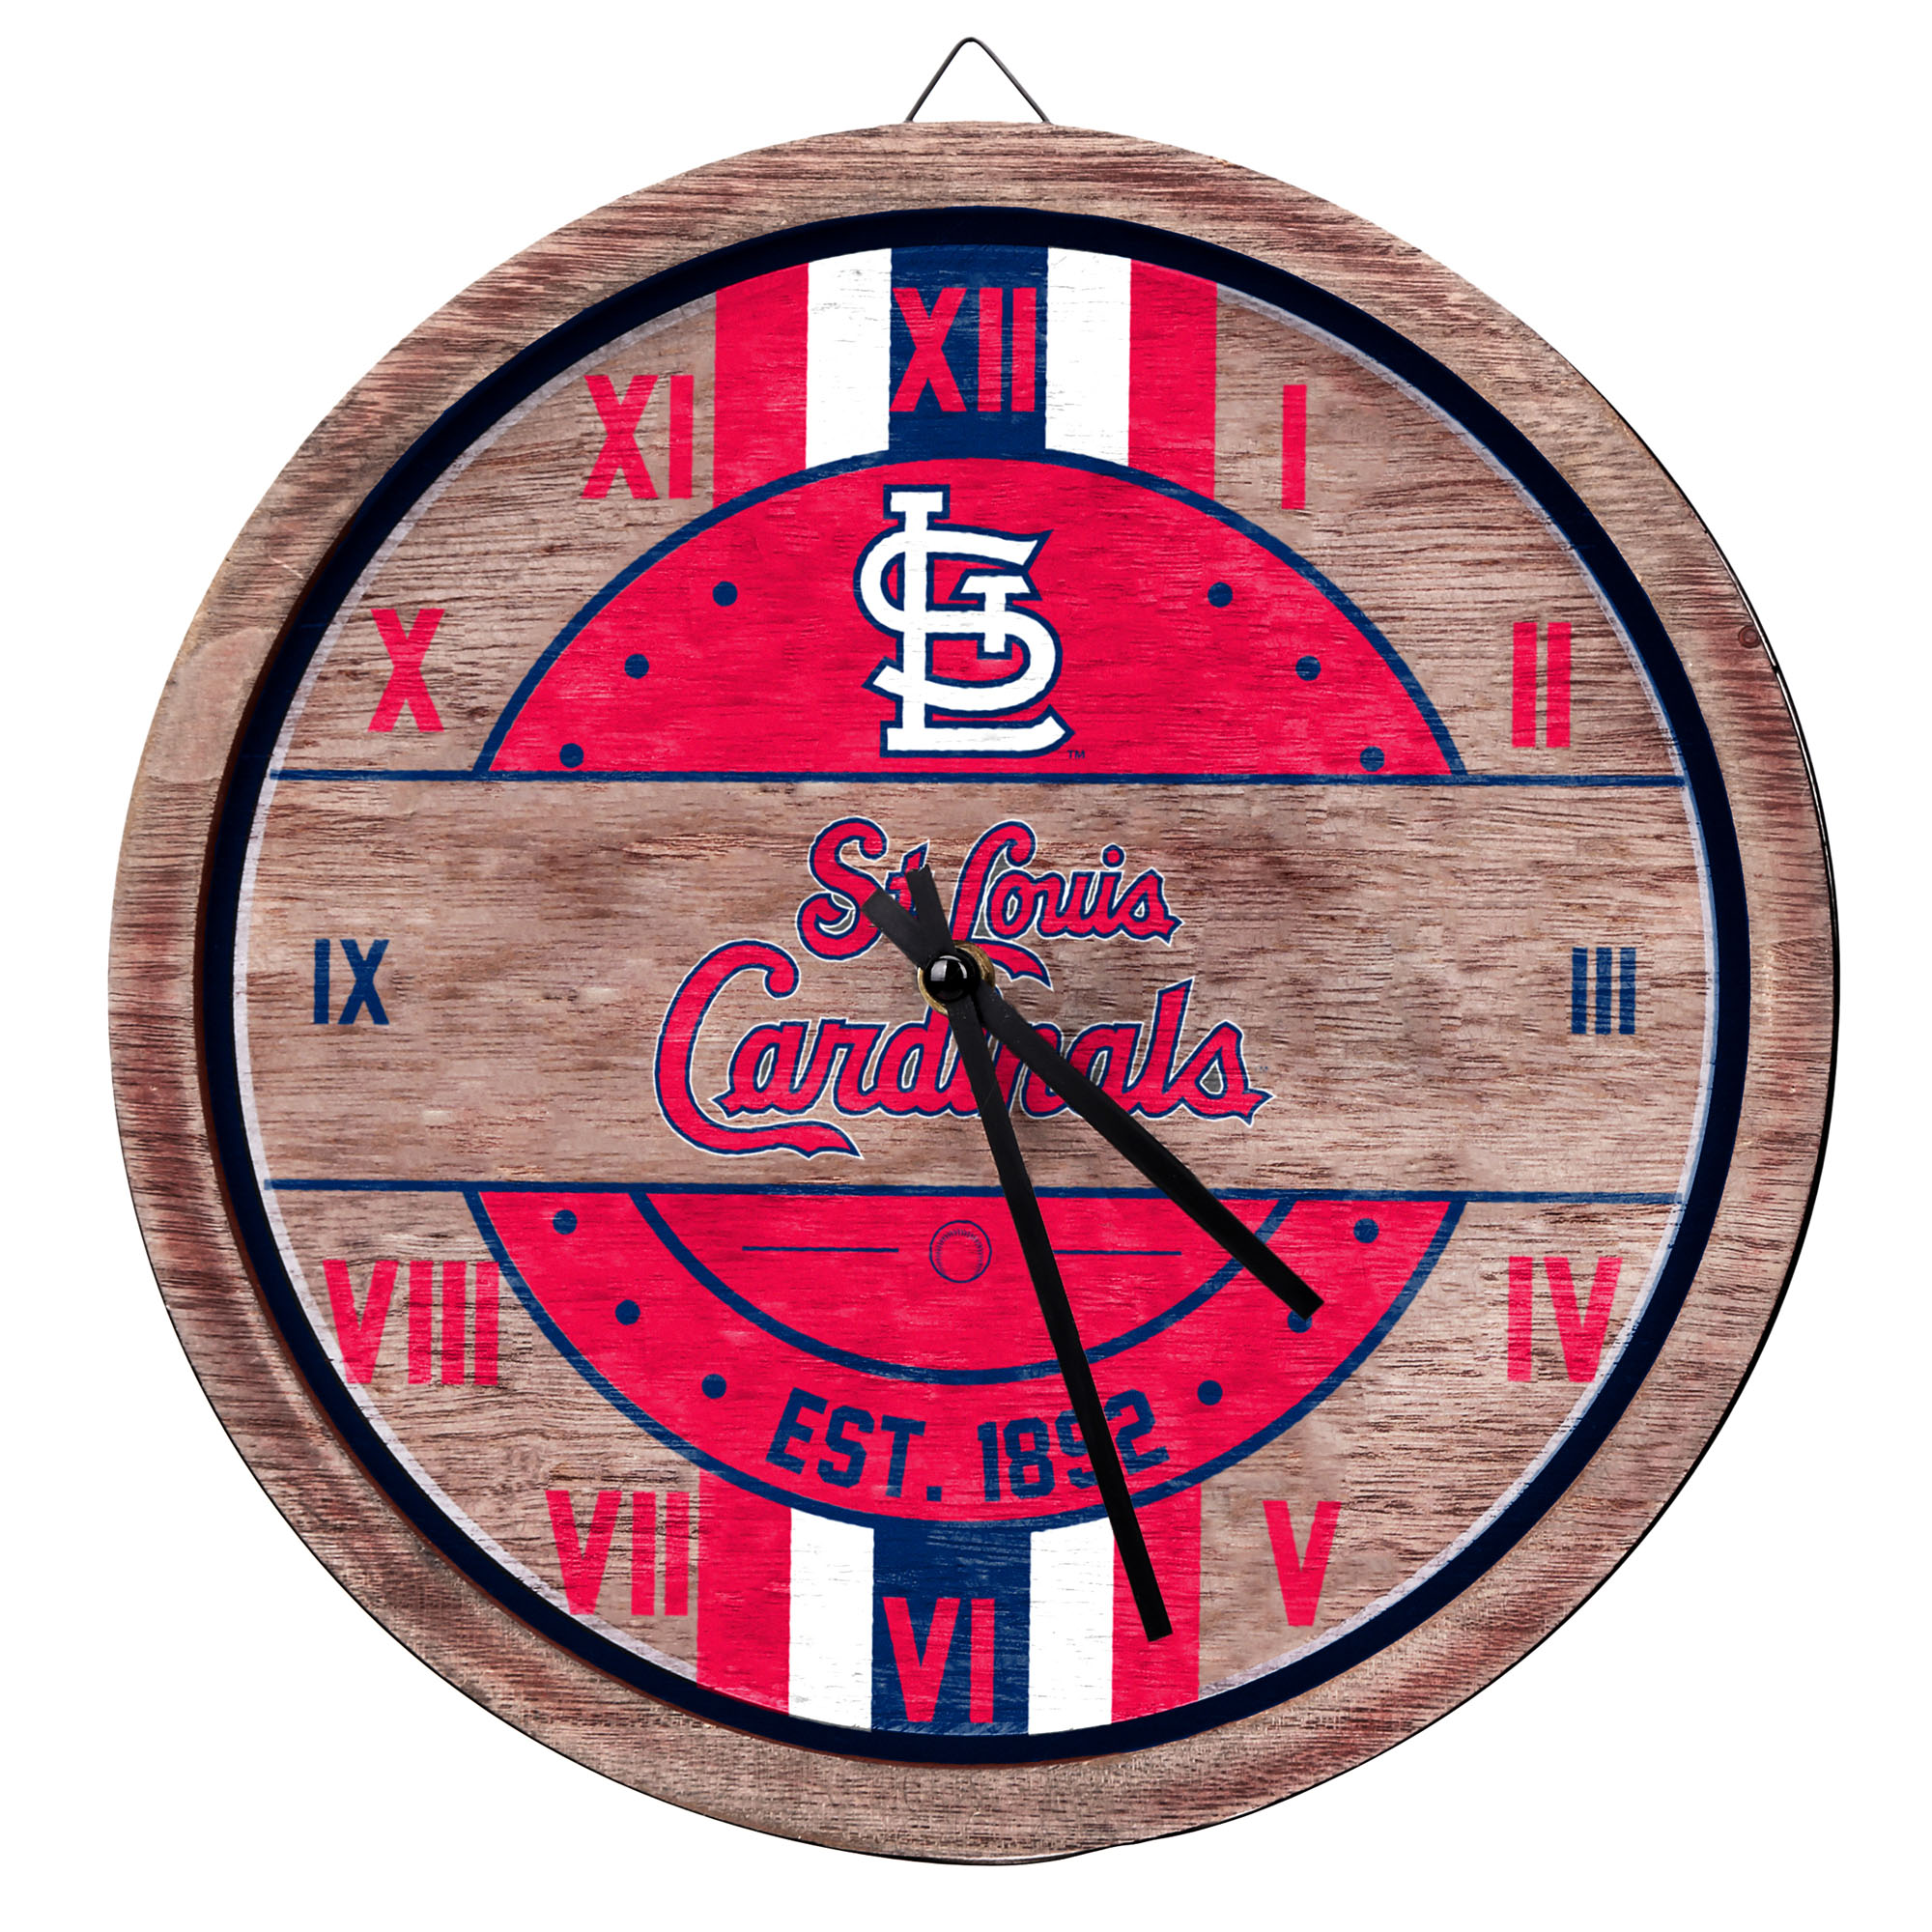 St. Louis Cardinals Metal Wall Clock - No Size